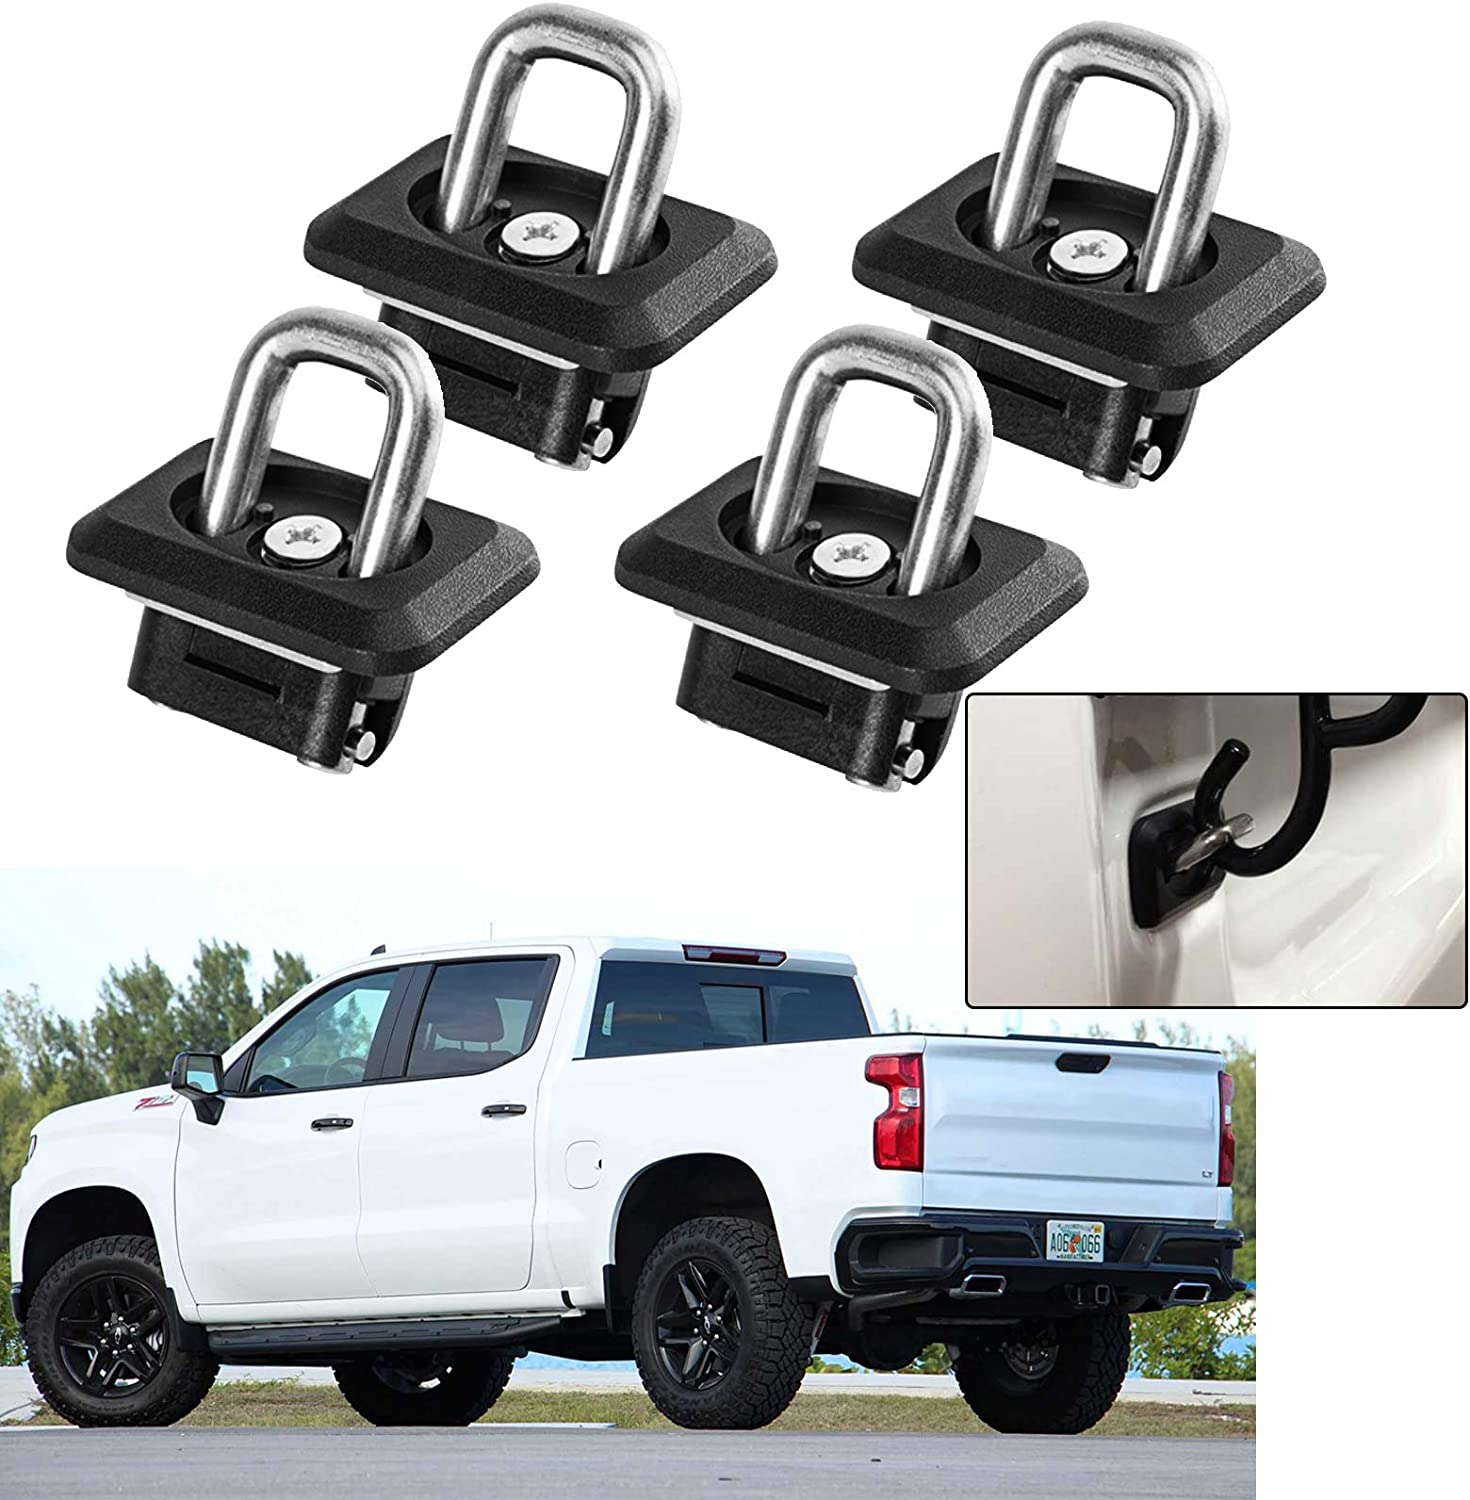 1 Pair 2015-2020 Colorado /& Canyon Truck Bed Side Wall Anchors Fit for 2007-2020 Chevy Silverado /& GMC Sierra 1500 2500 3500 Eleven Guns Retractable Tie Down Anchors